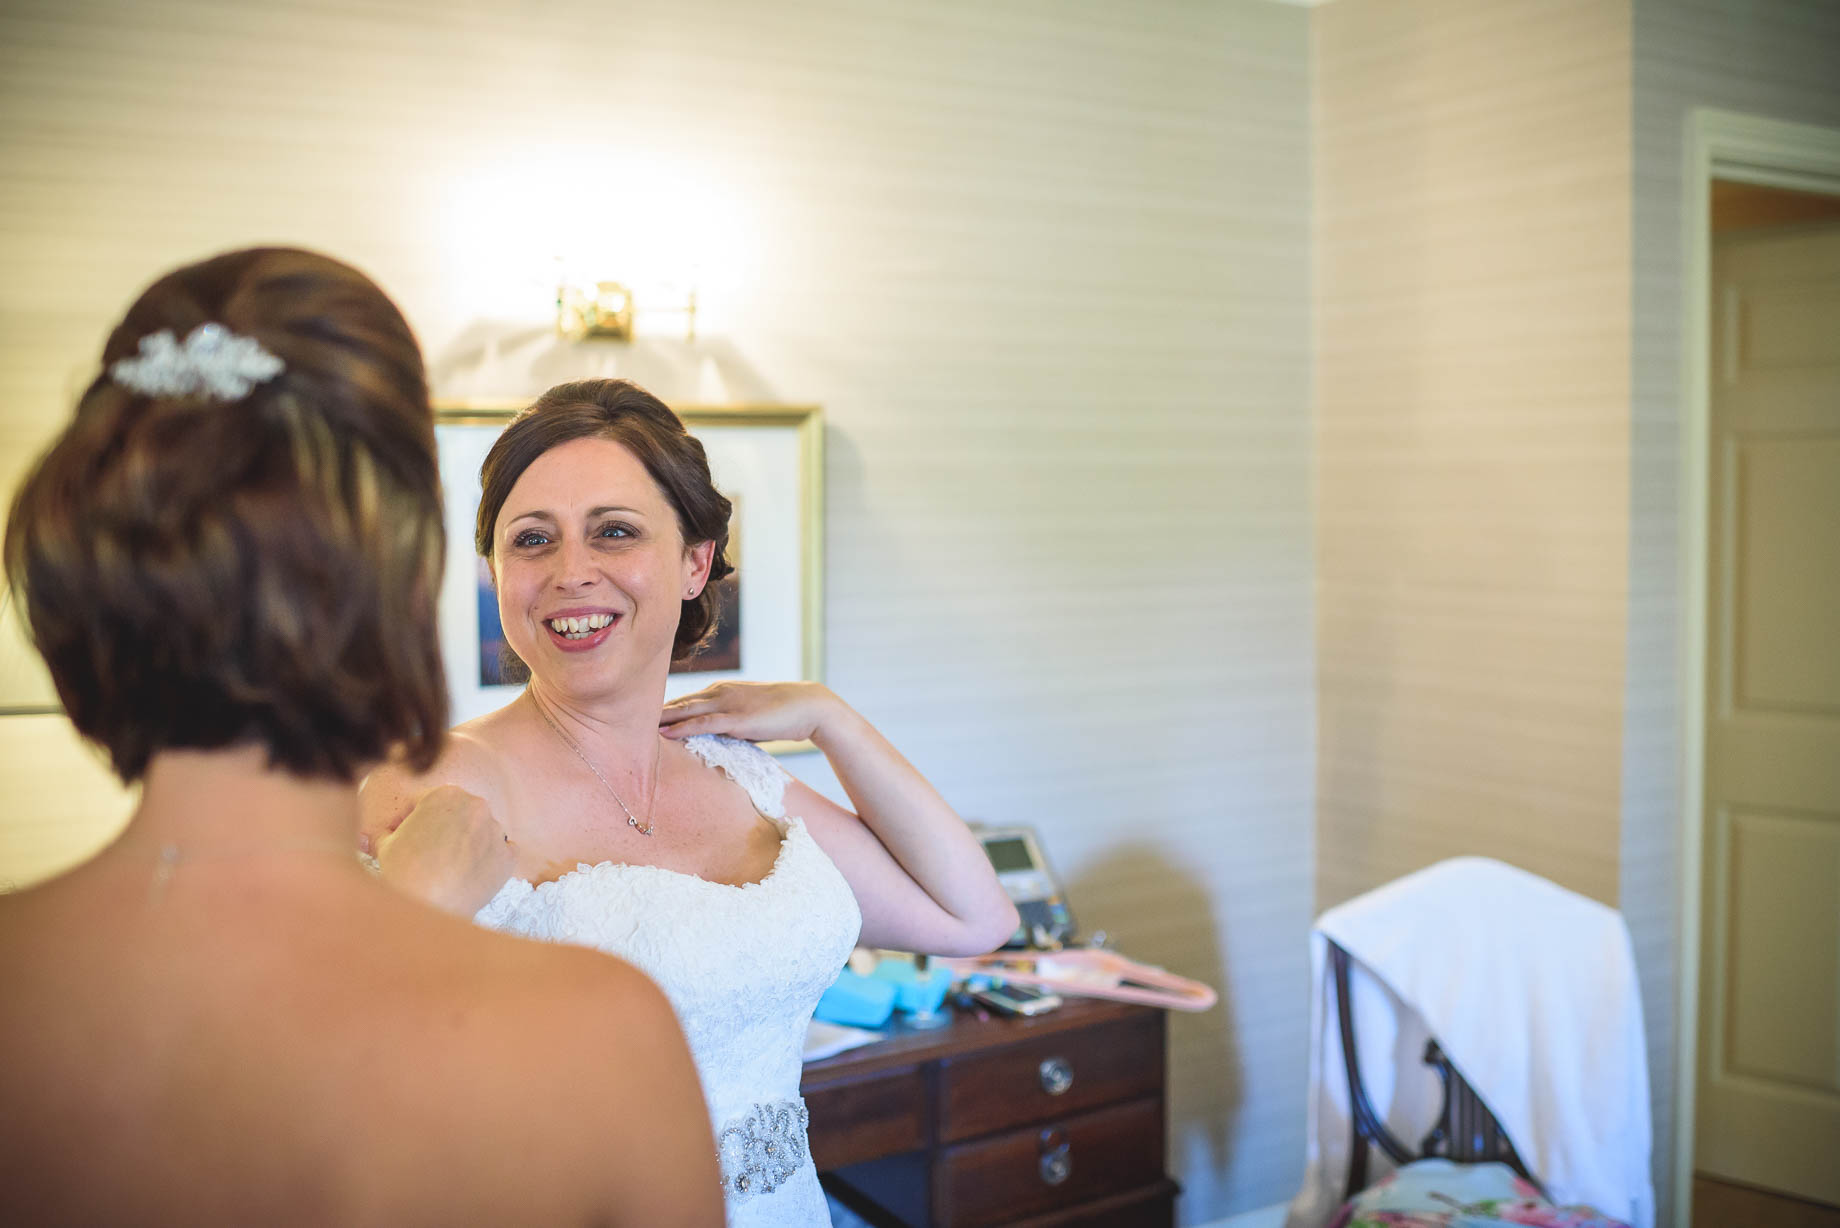 Luton Hoo wedding photography by Guy Collier Photography - Lauren and Gem (46 of 178)